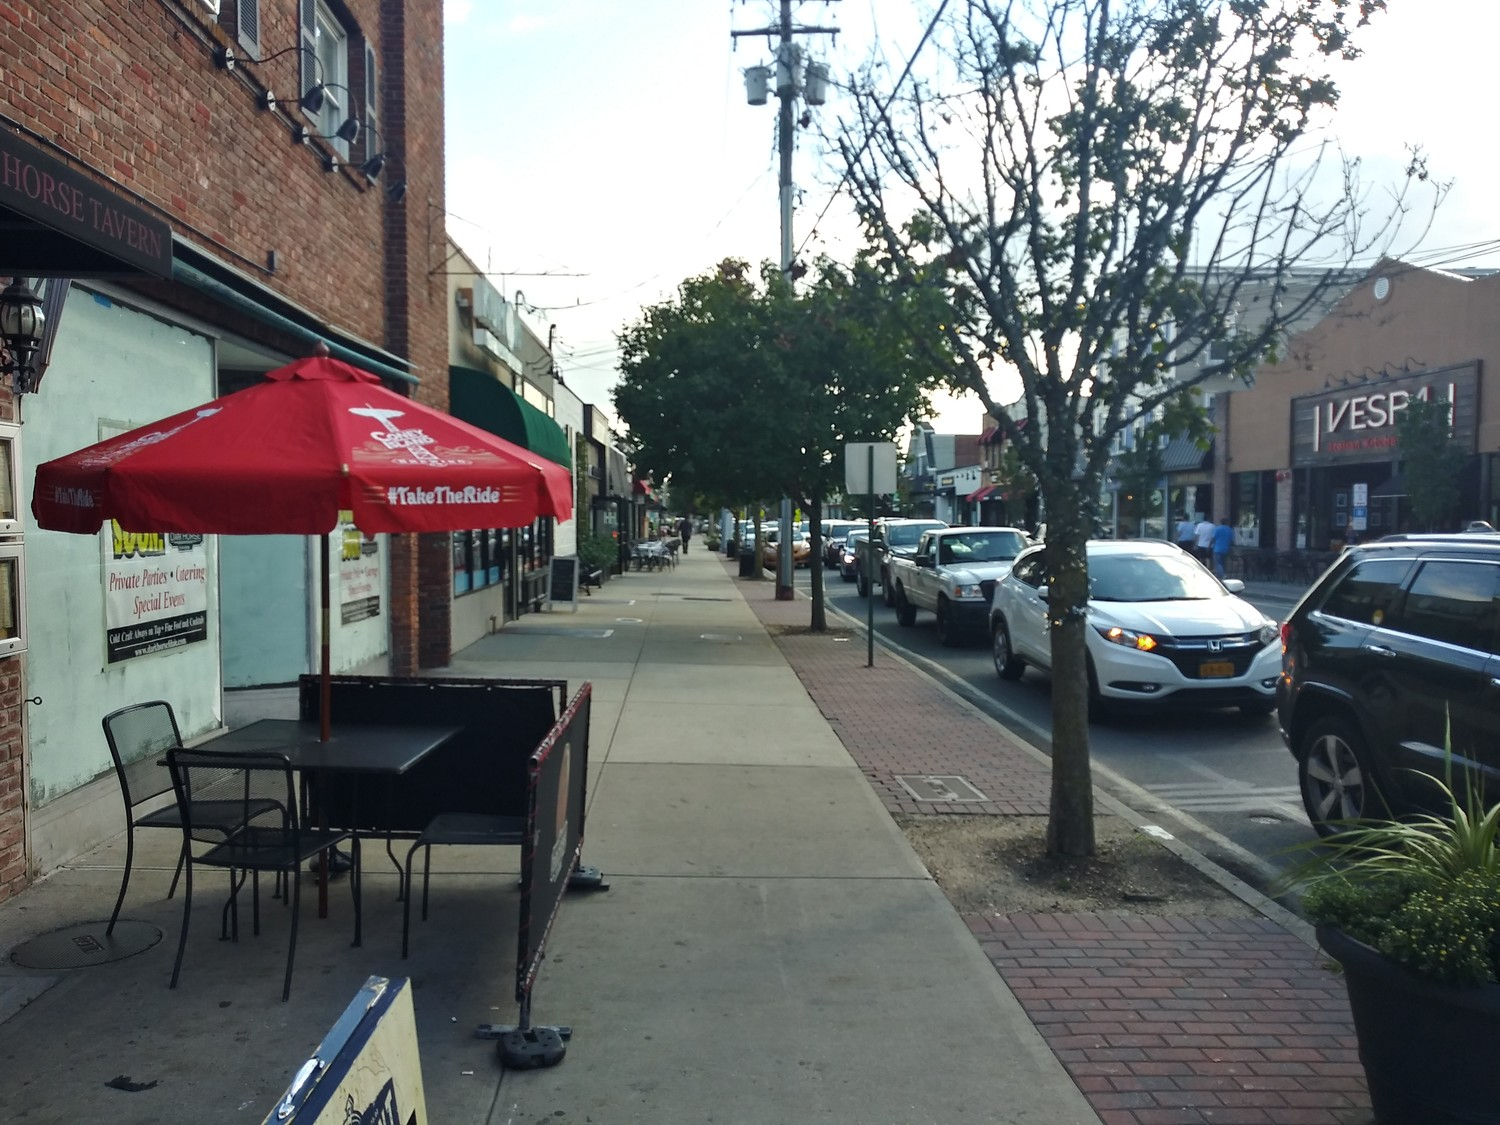 The Village of Farmingdale's Main Street is filled with restaurants, bars and more, though it looked more like Grand Avenue just a few years ago.